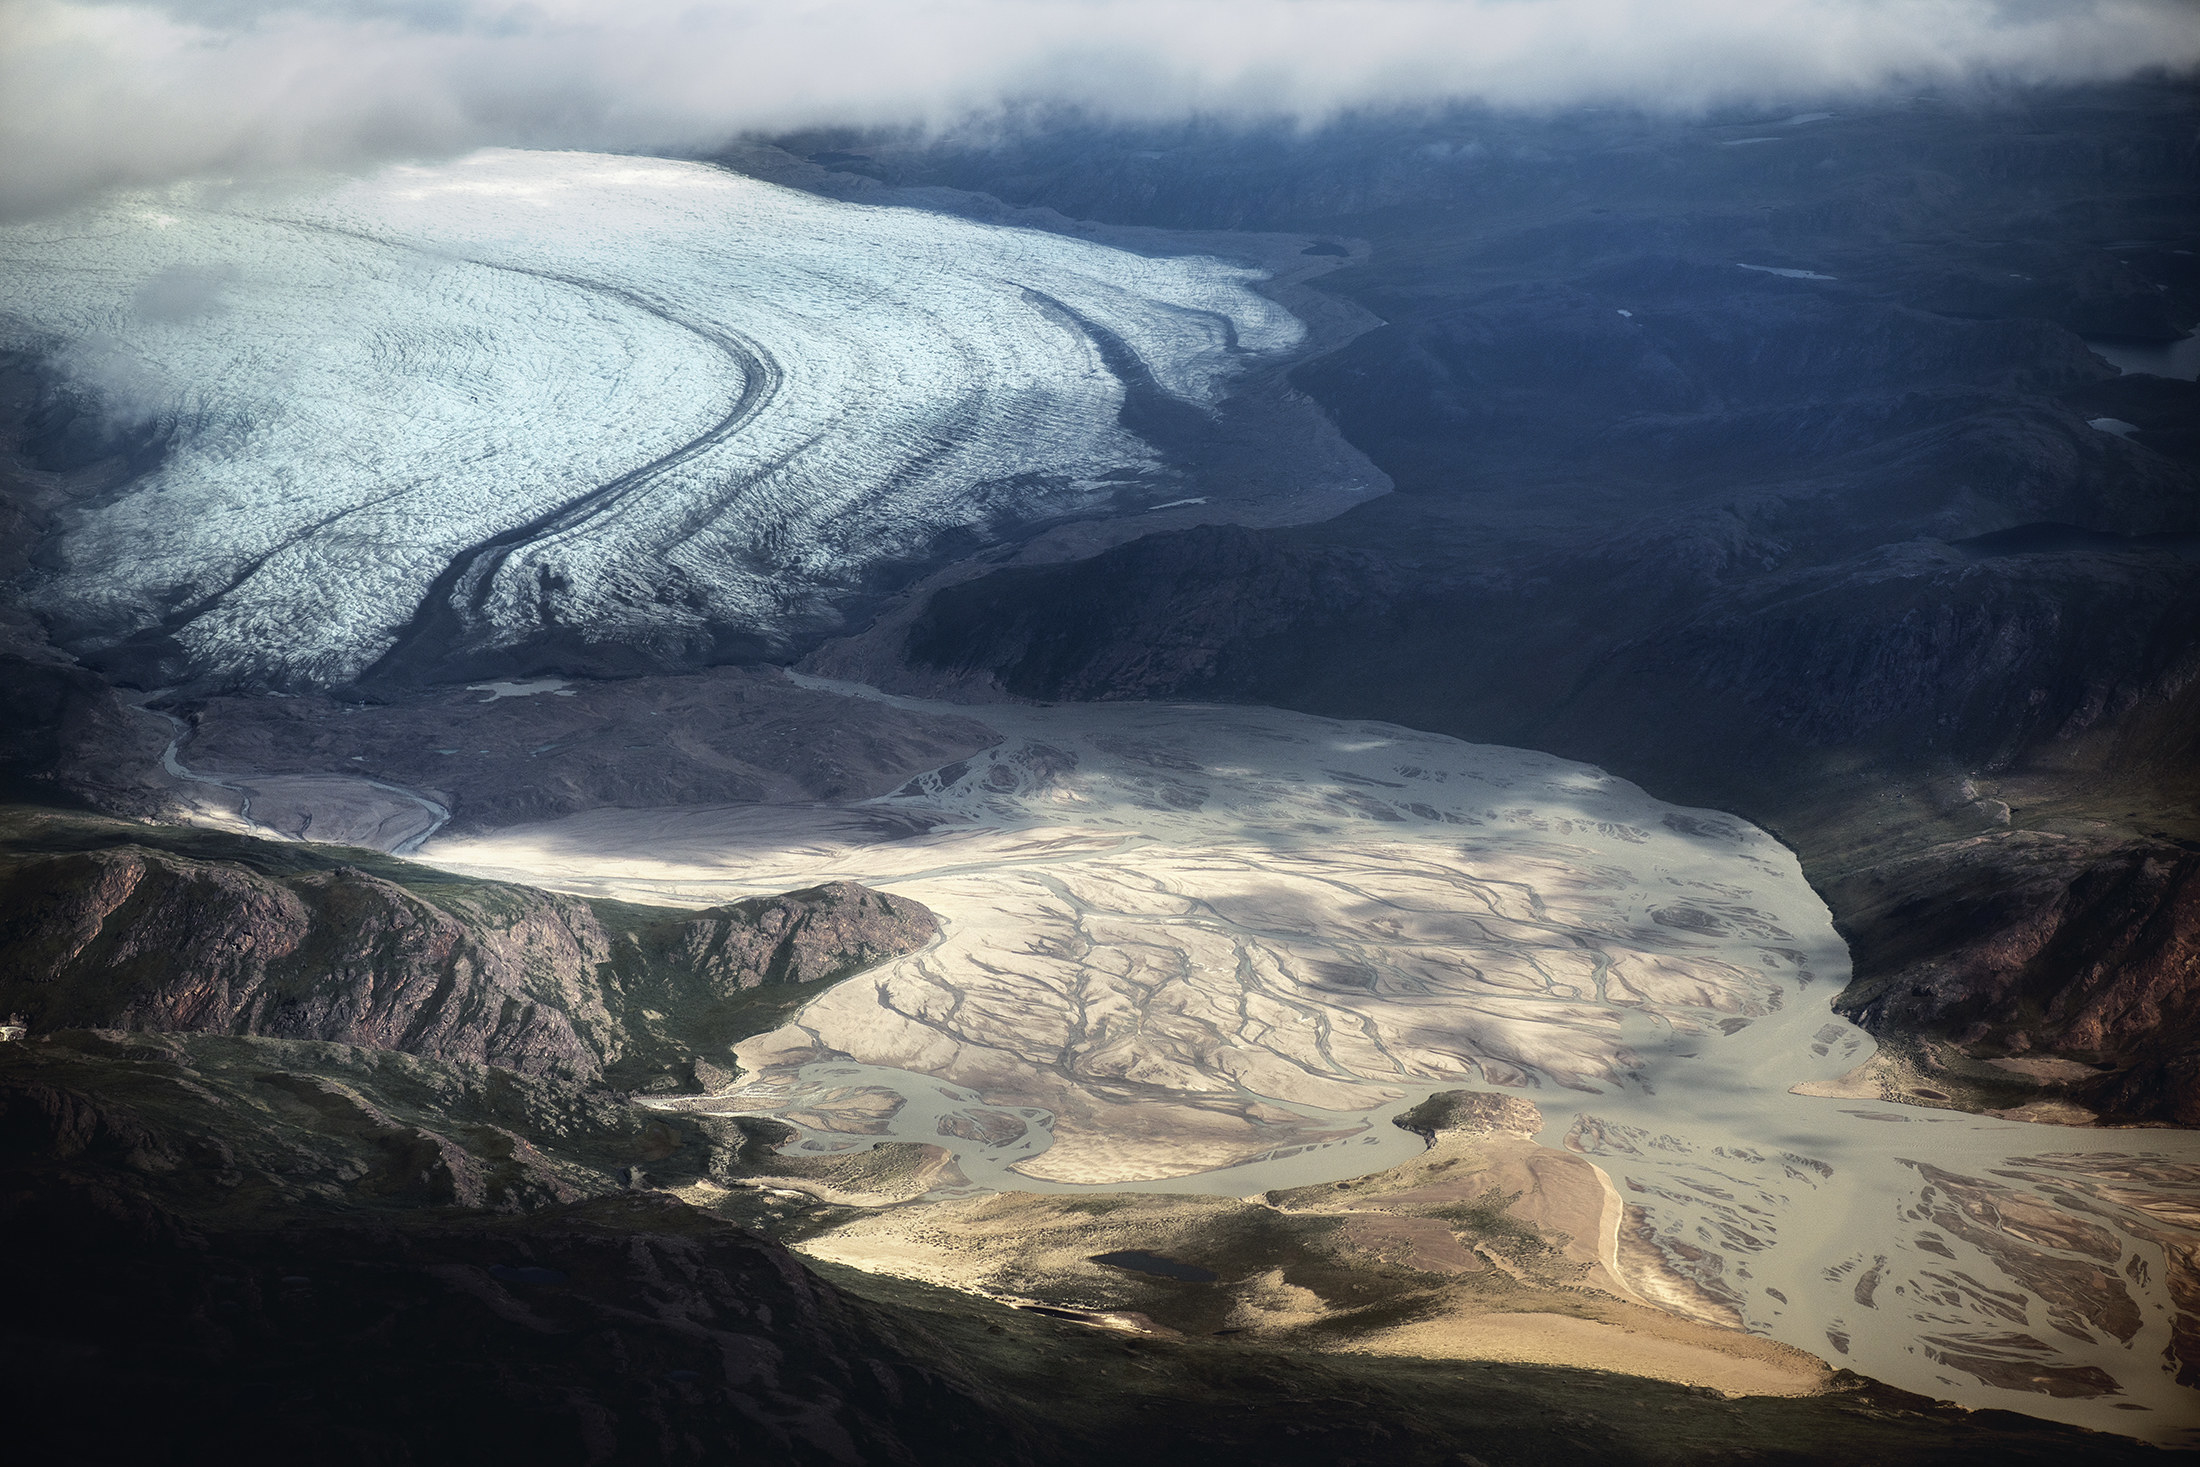 An aerial photo of a large glacier surrounded by mountains that gradually becomes a sandy series of rivers